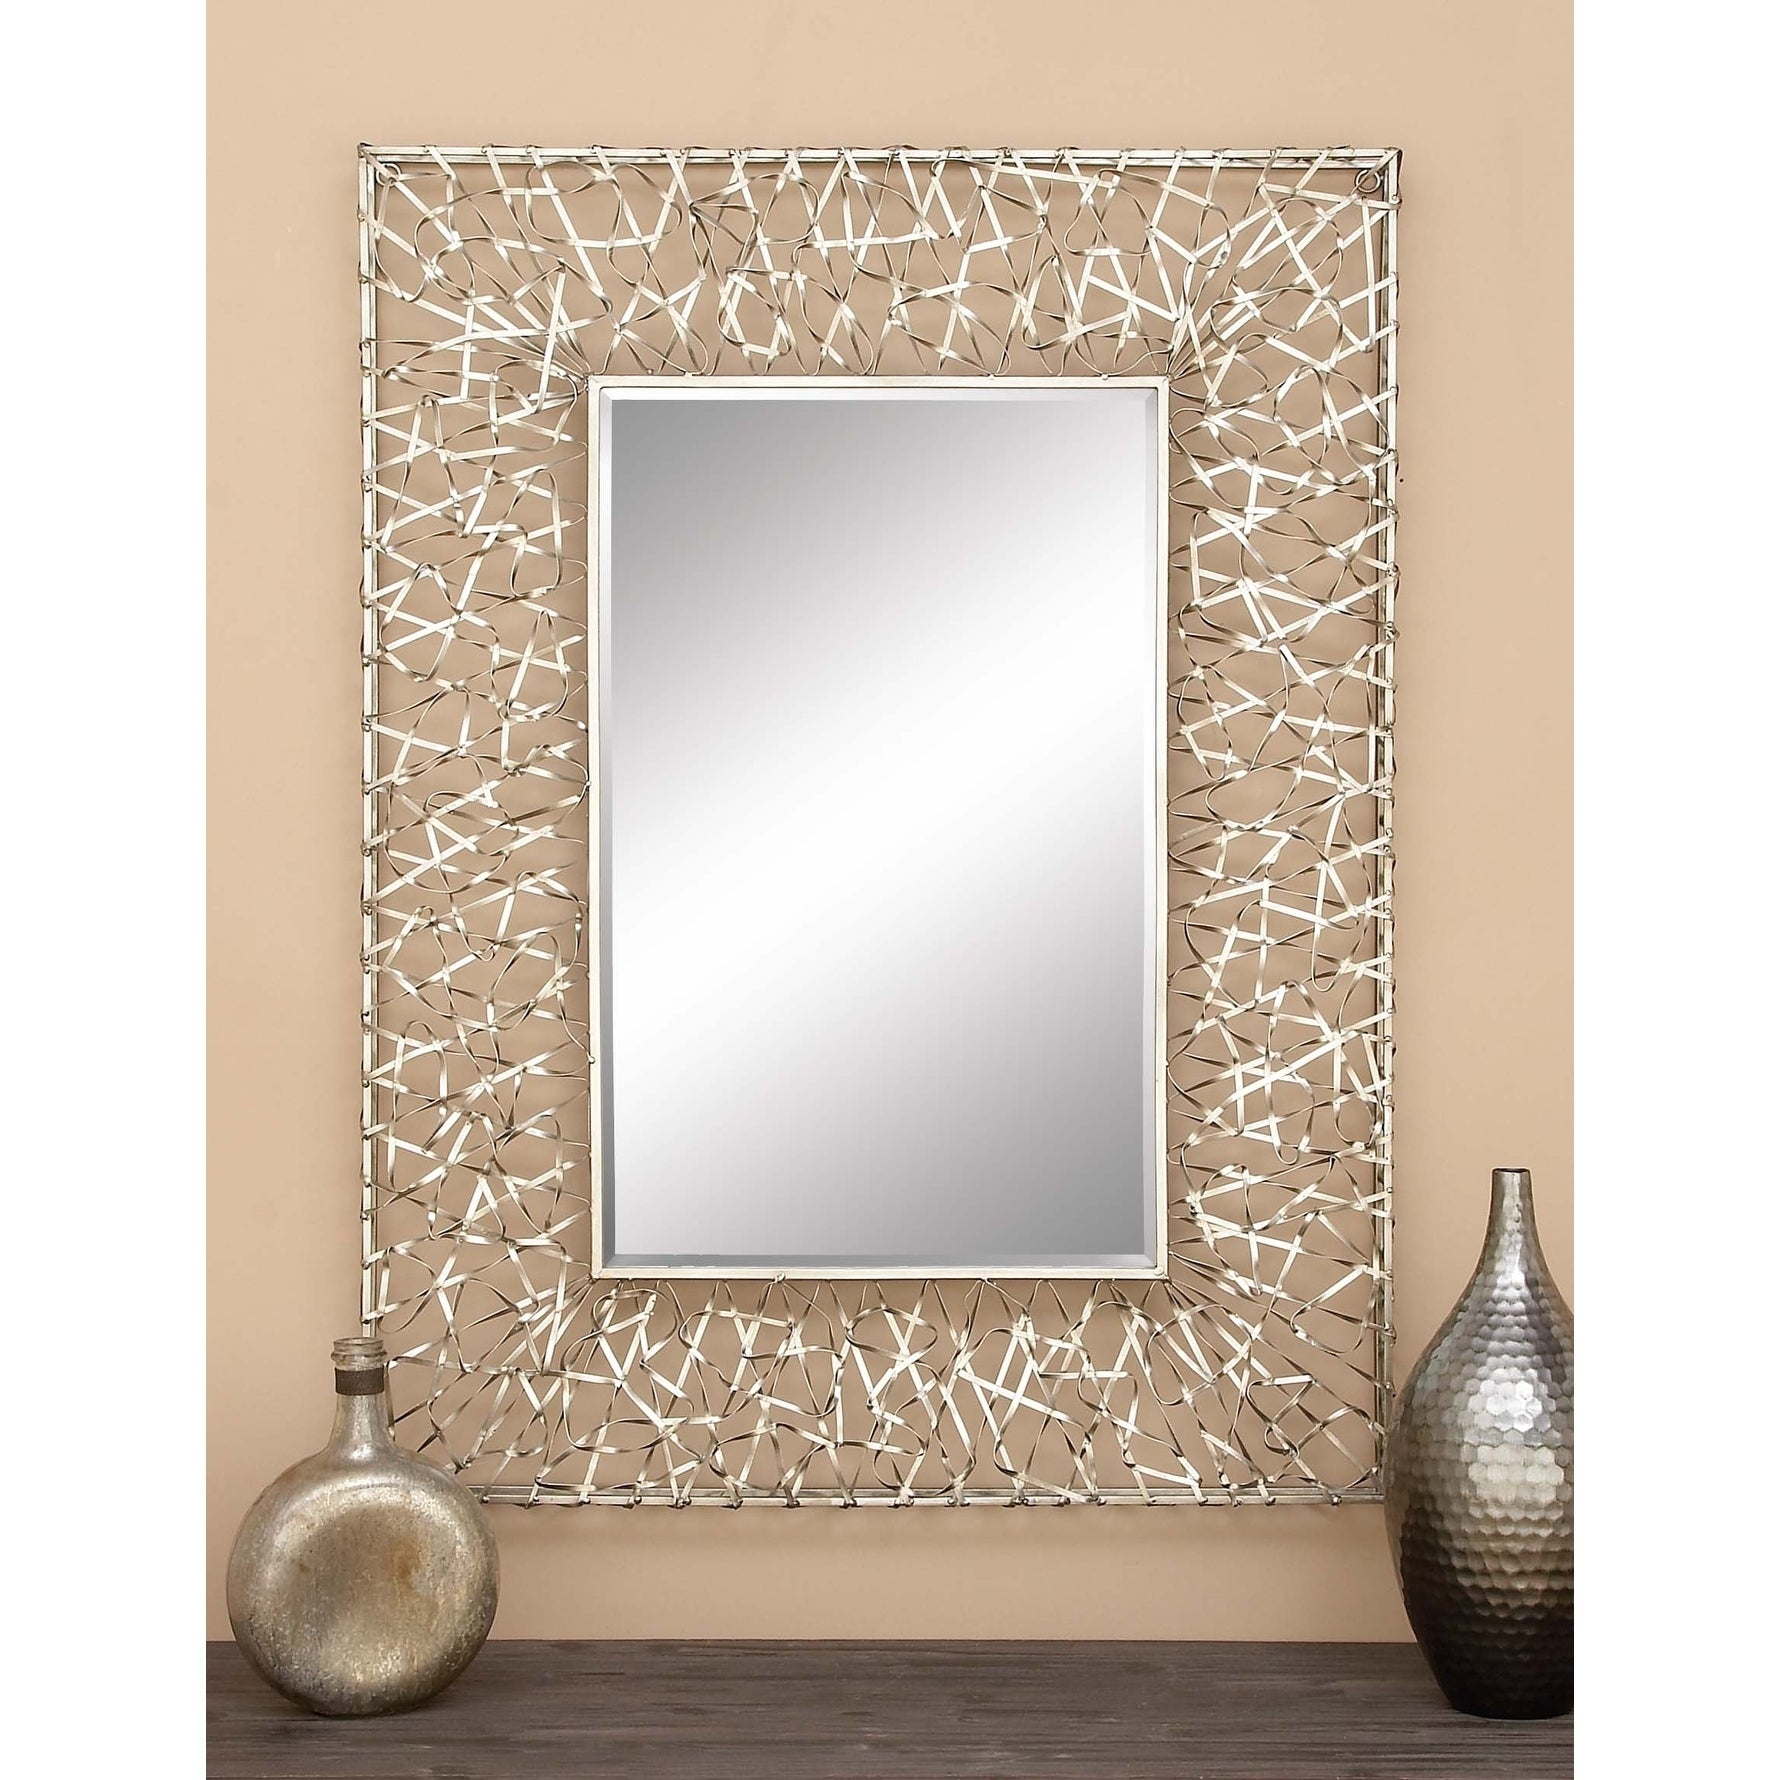 Contemporary 42 Inch Abstract Ribbon Framed Wall Mirrorstudio 350 –  Silver Intended For Rectangle Pewter Beveled Wall Mirrors (Image 7 of 20)